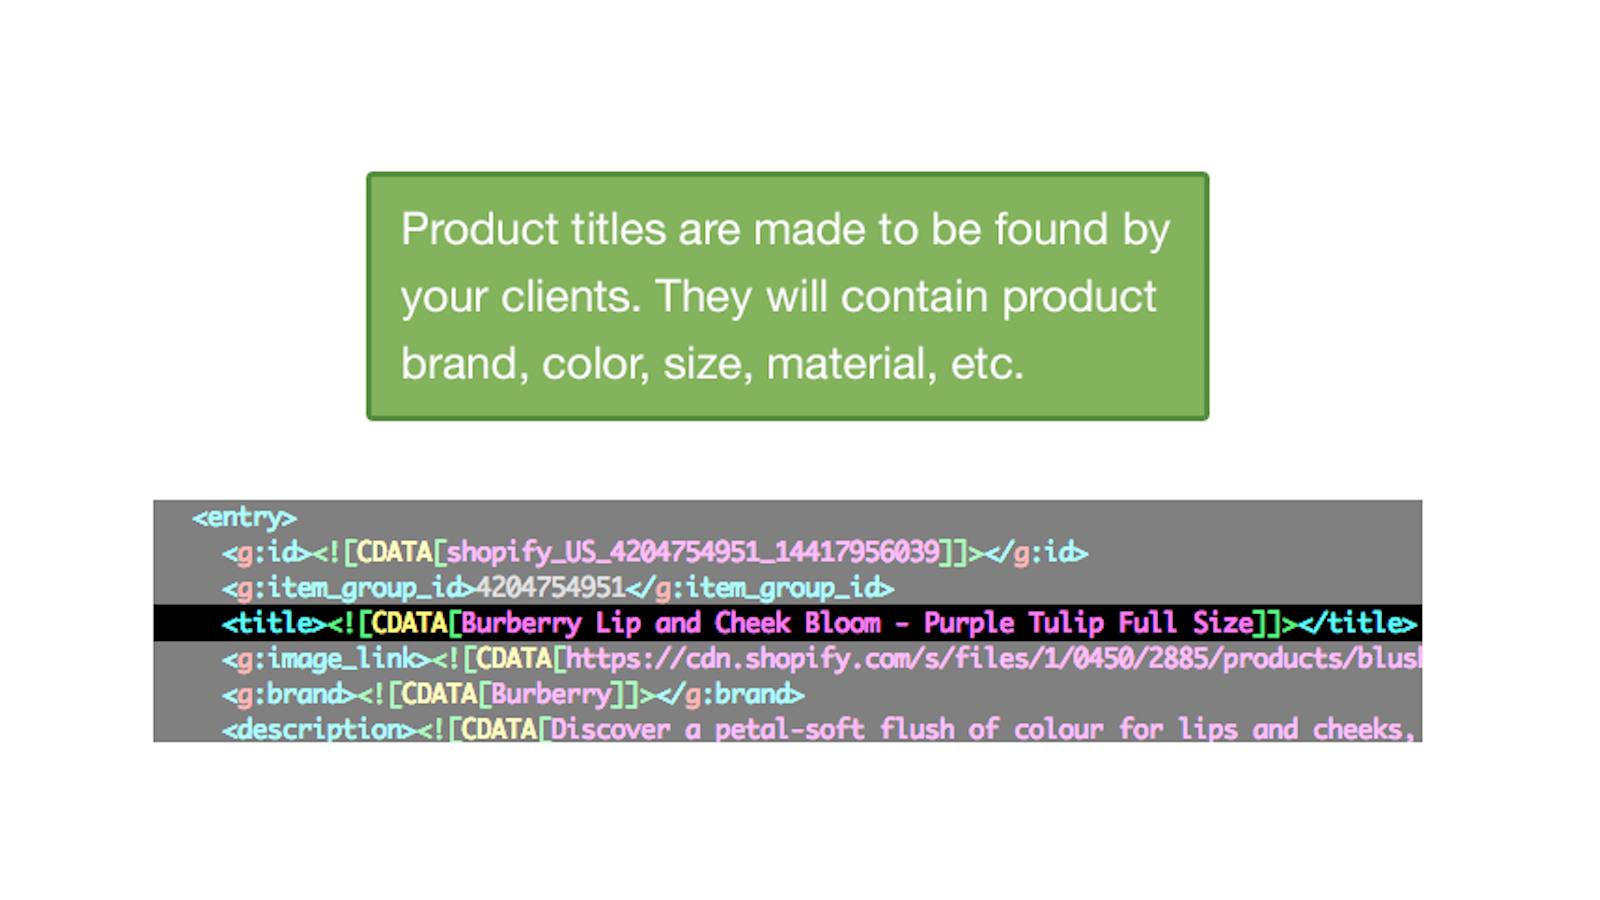 Product titles will contains brand, color, size